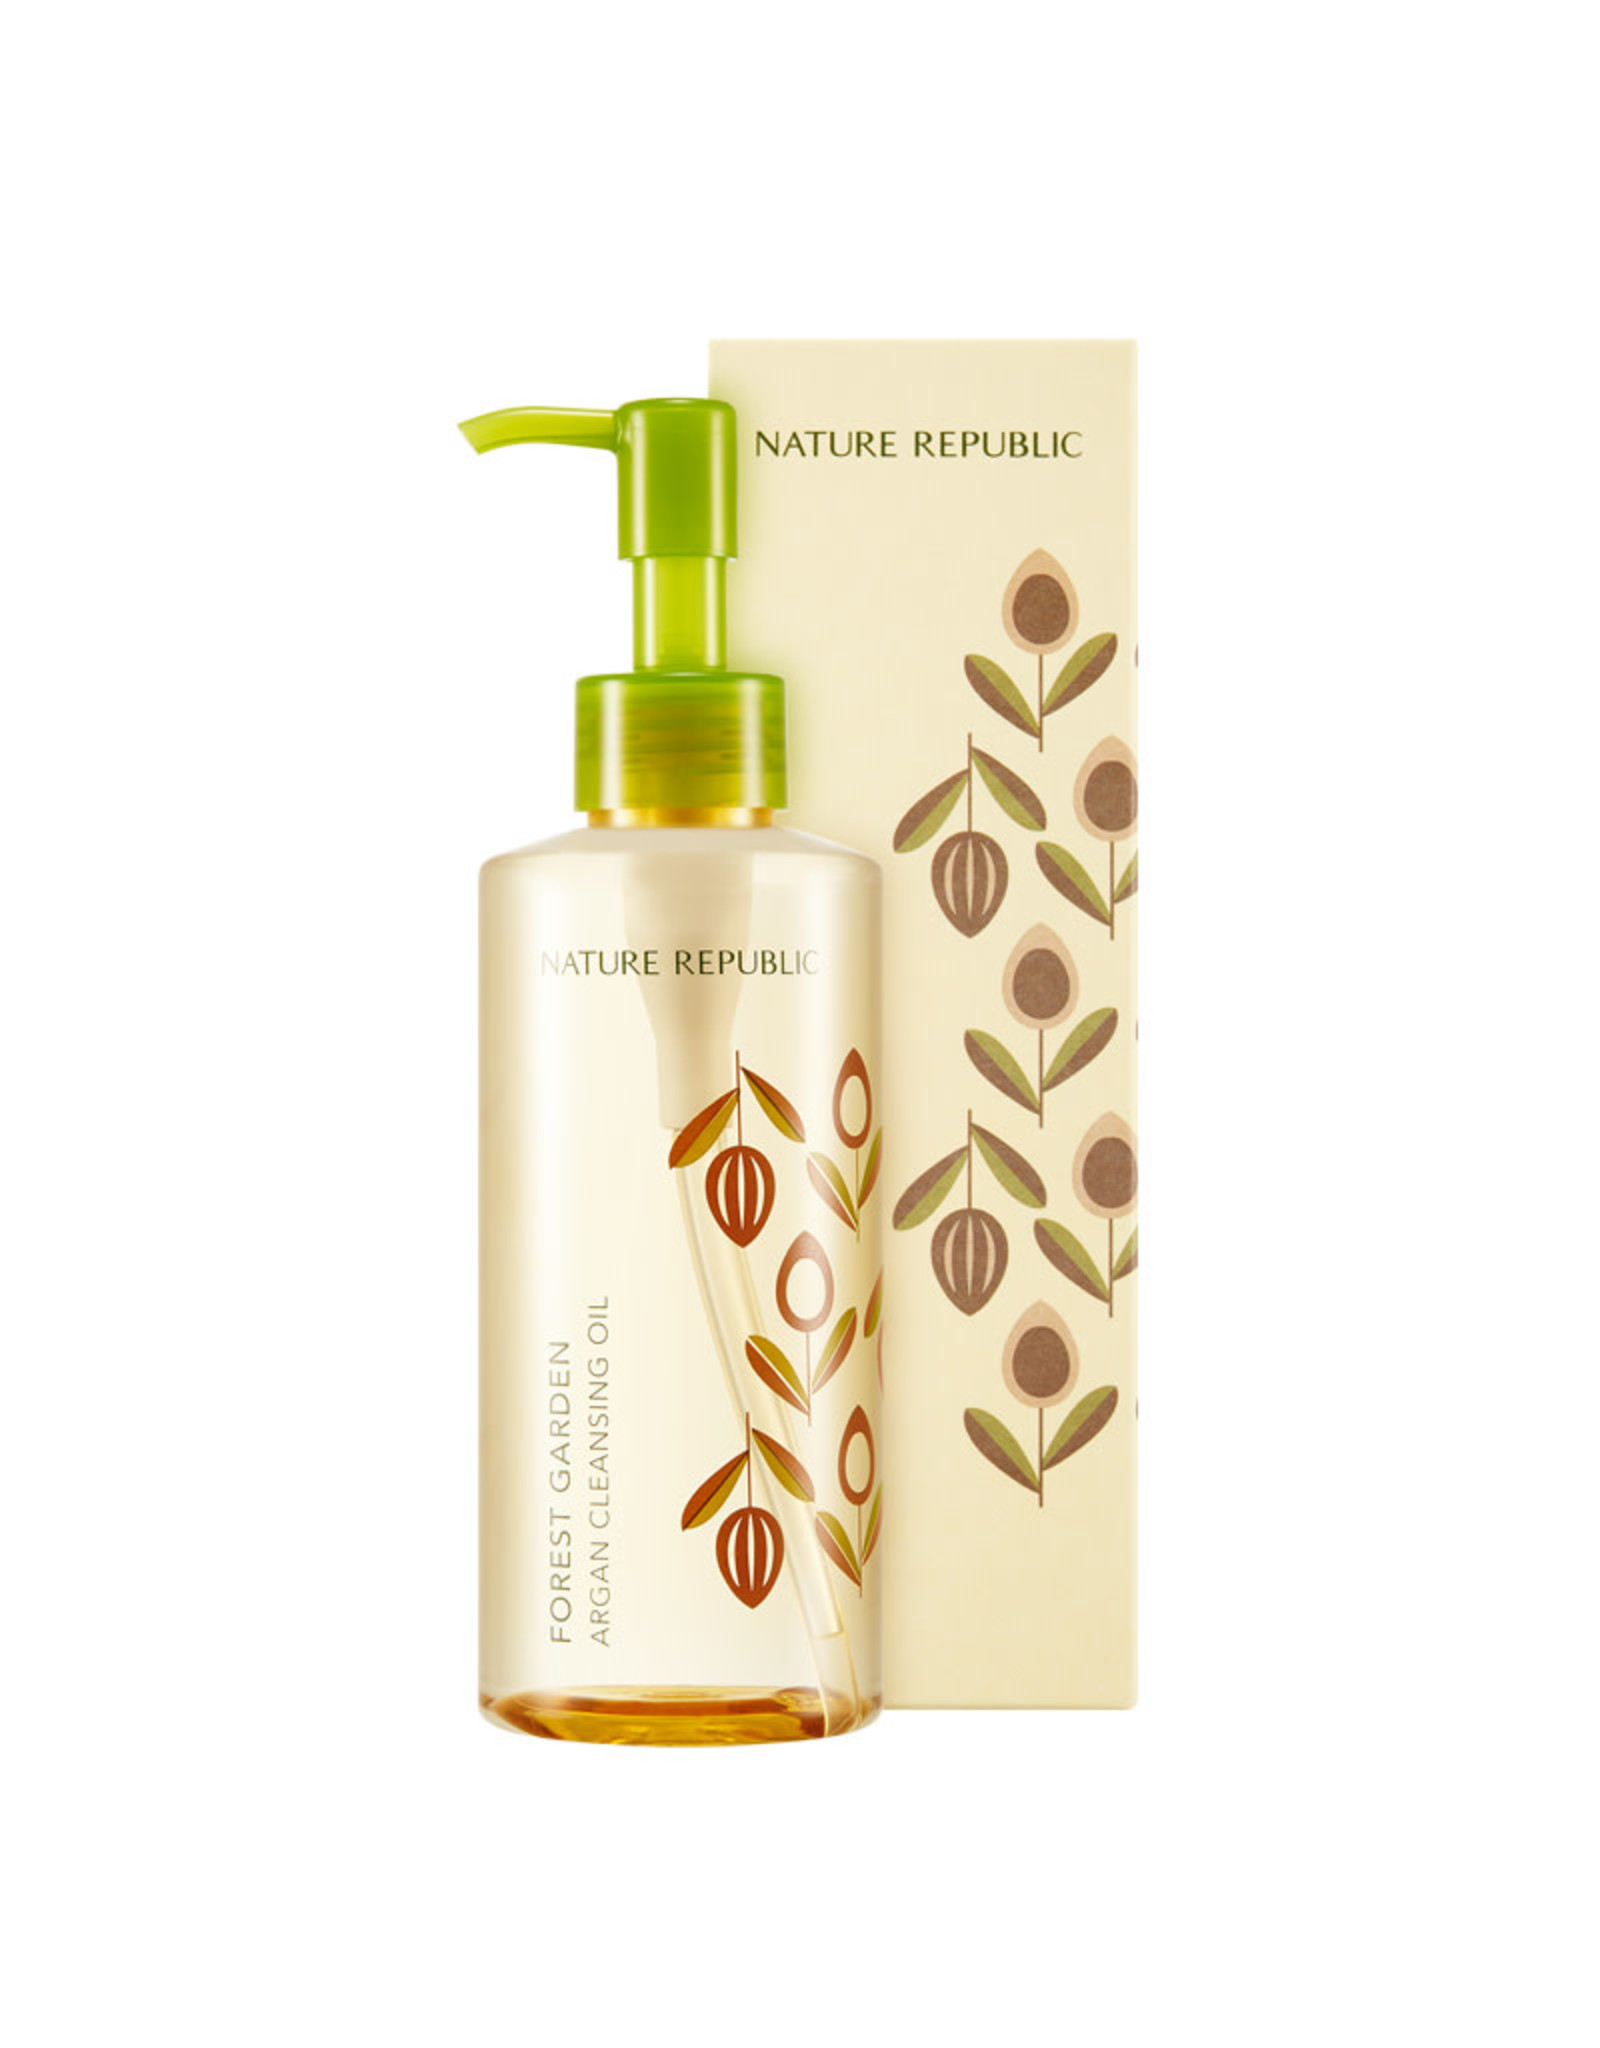 Forest Garden Argan Cleansing Oil